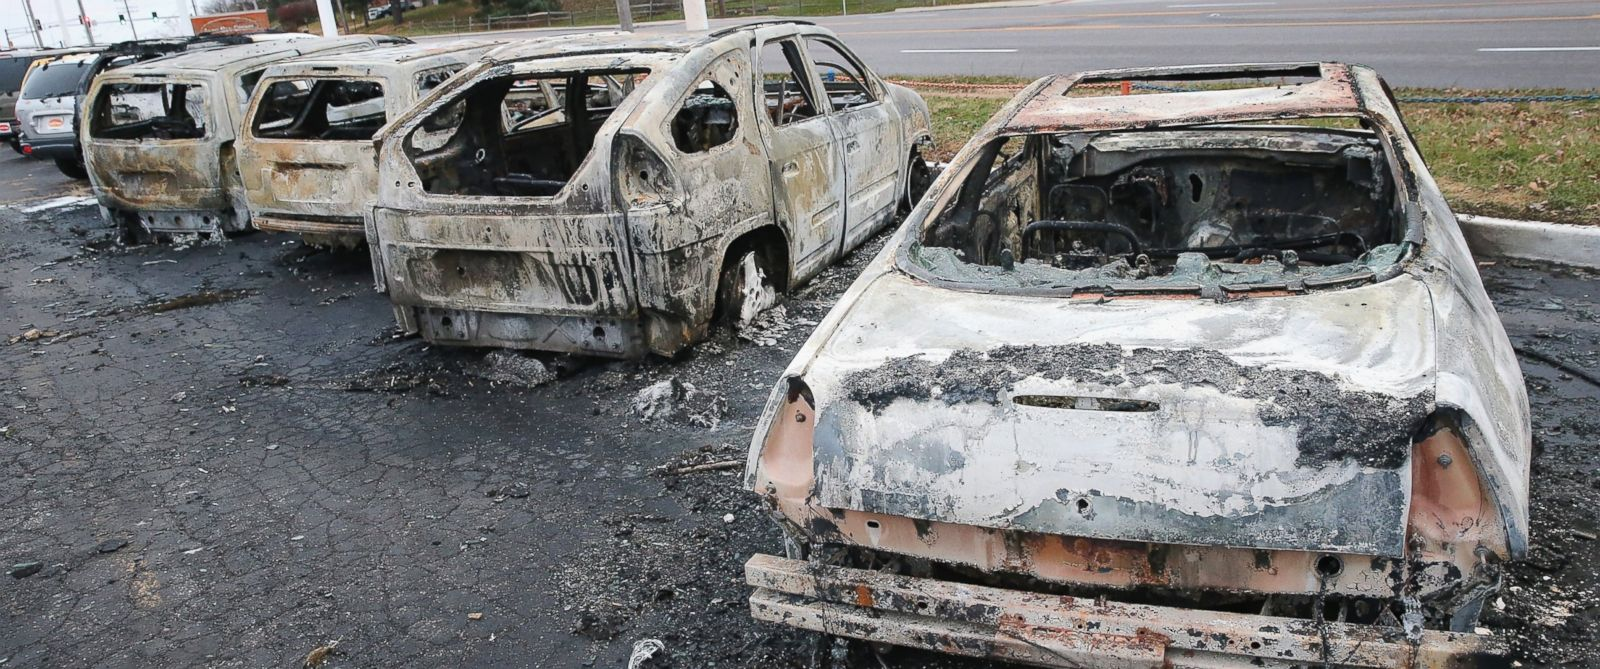 PHOTO: Cars which were set on fire when rioting erupted following the grand jury announcement in the Michael Brown case sit on a lot, Nov. 25, 2014 in Dellword Mo.